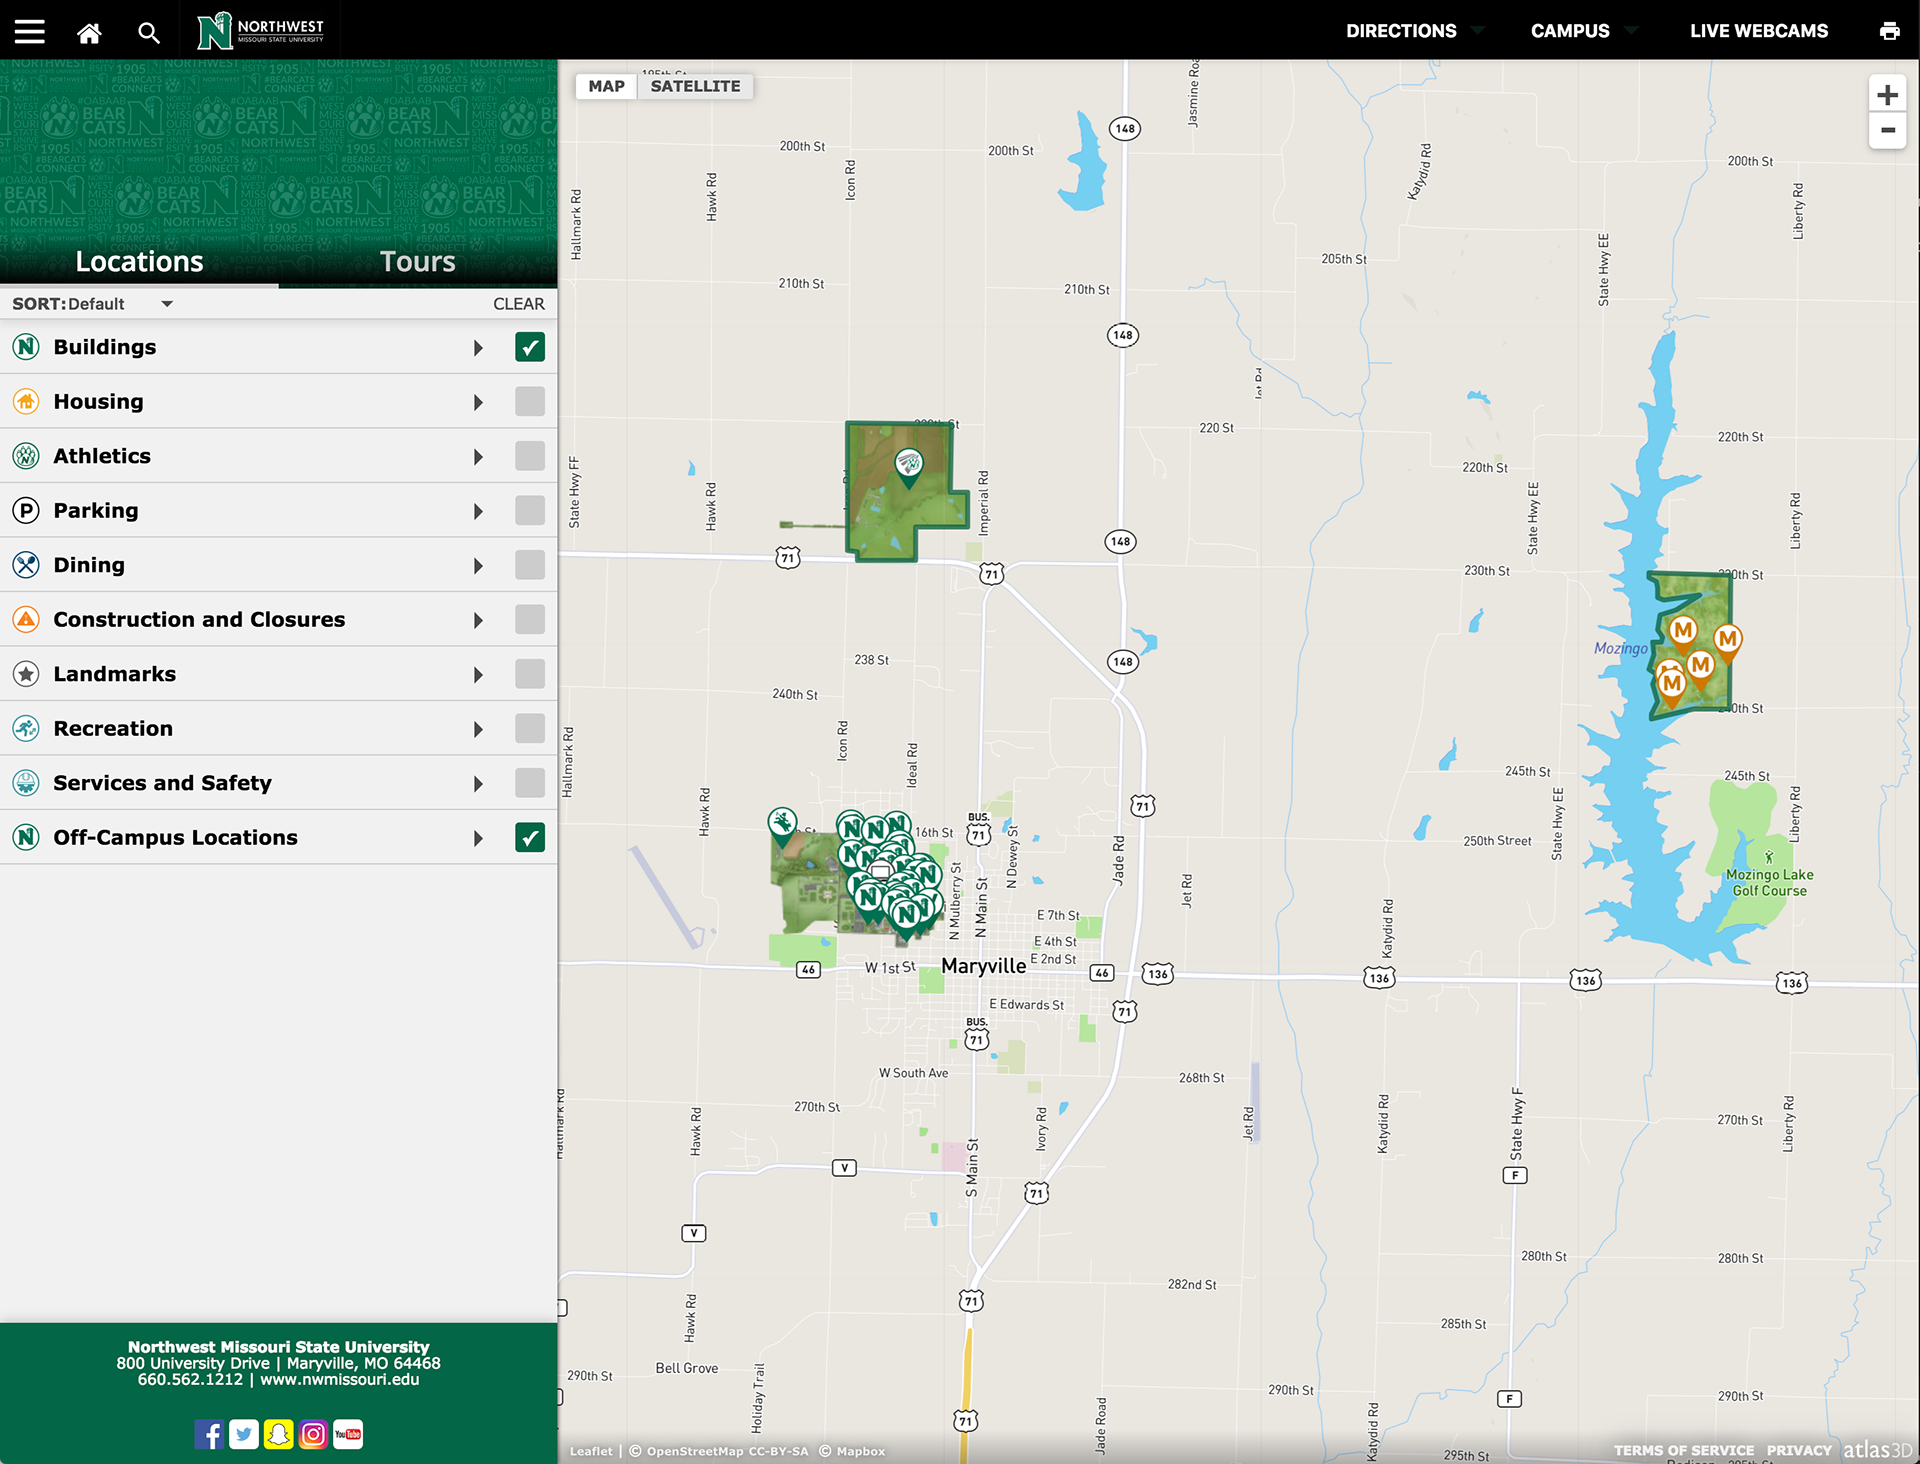 Northwest Missouri Map.Northwest Missouri State University Marketing And Communication